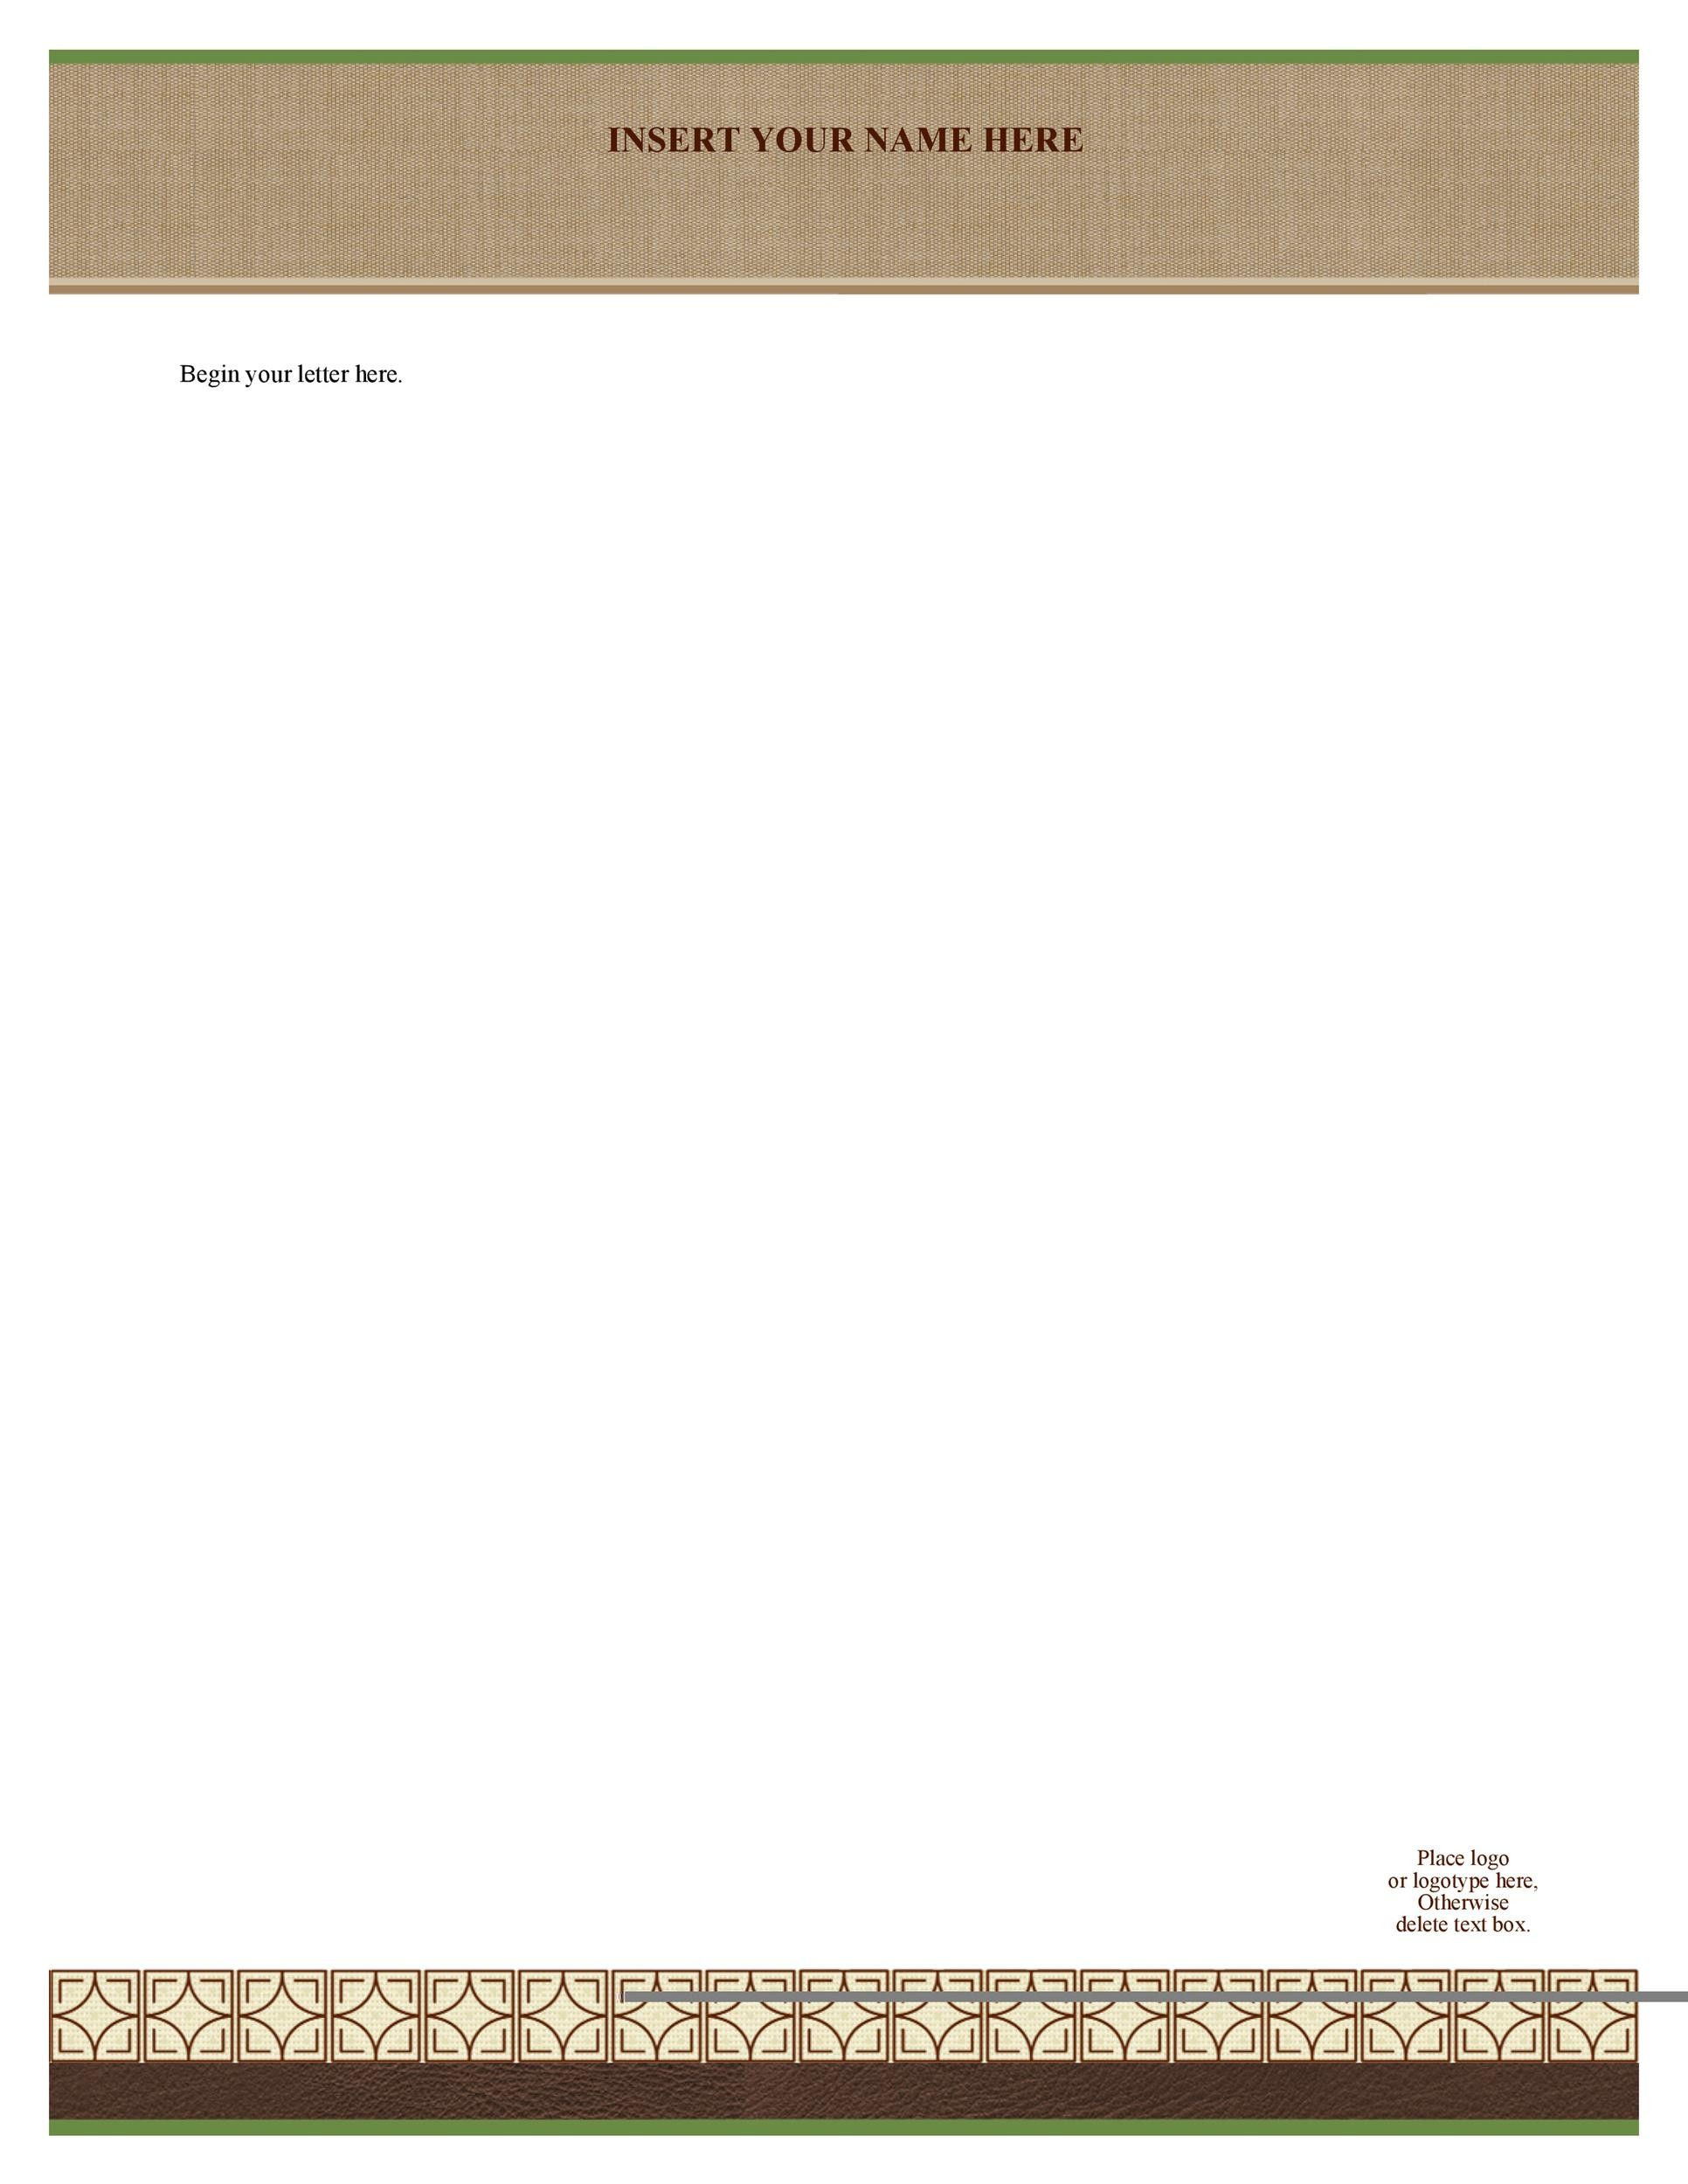 Free Letterhead Template 10  Free Letterhead Templates Download